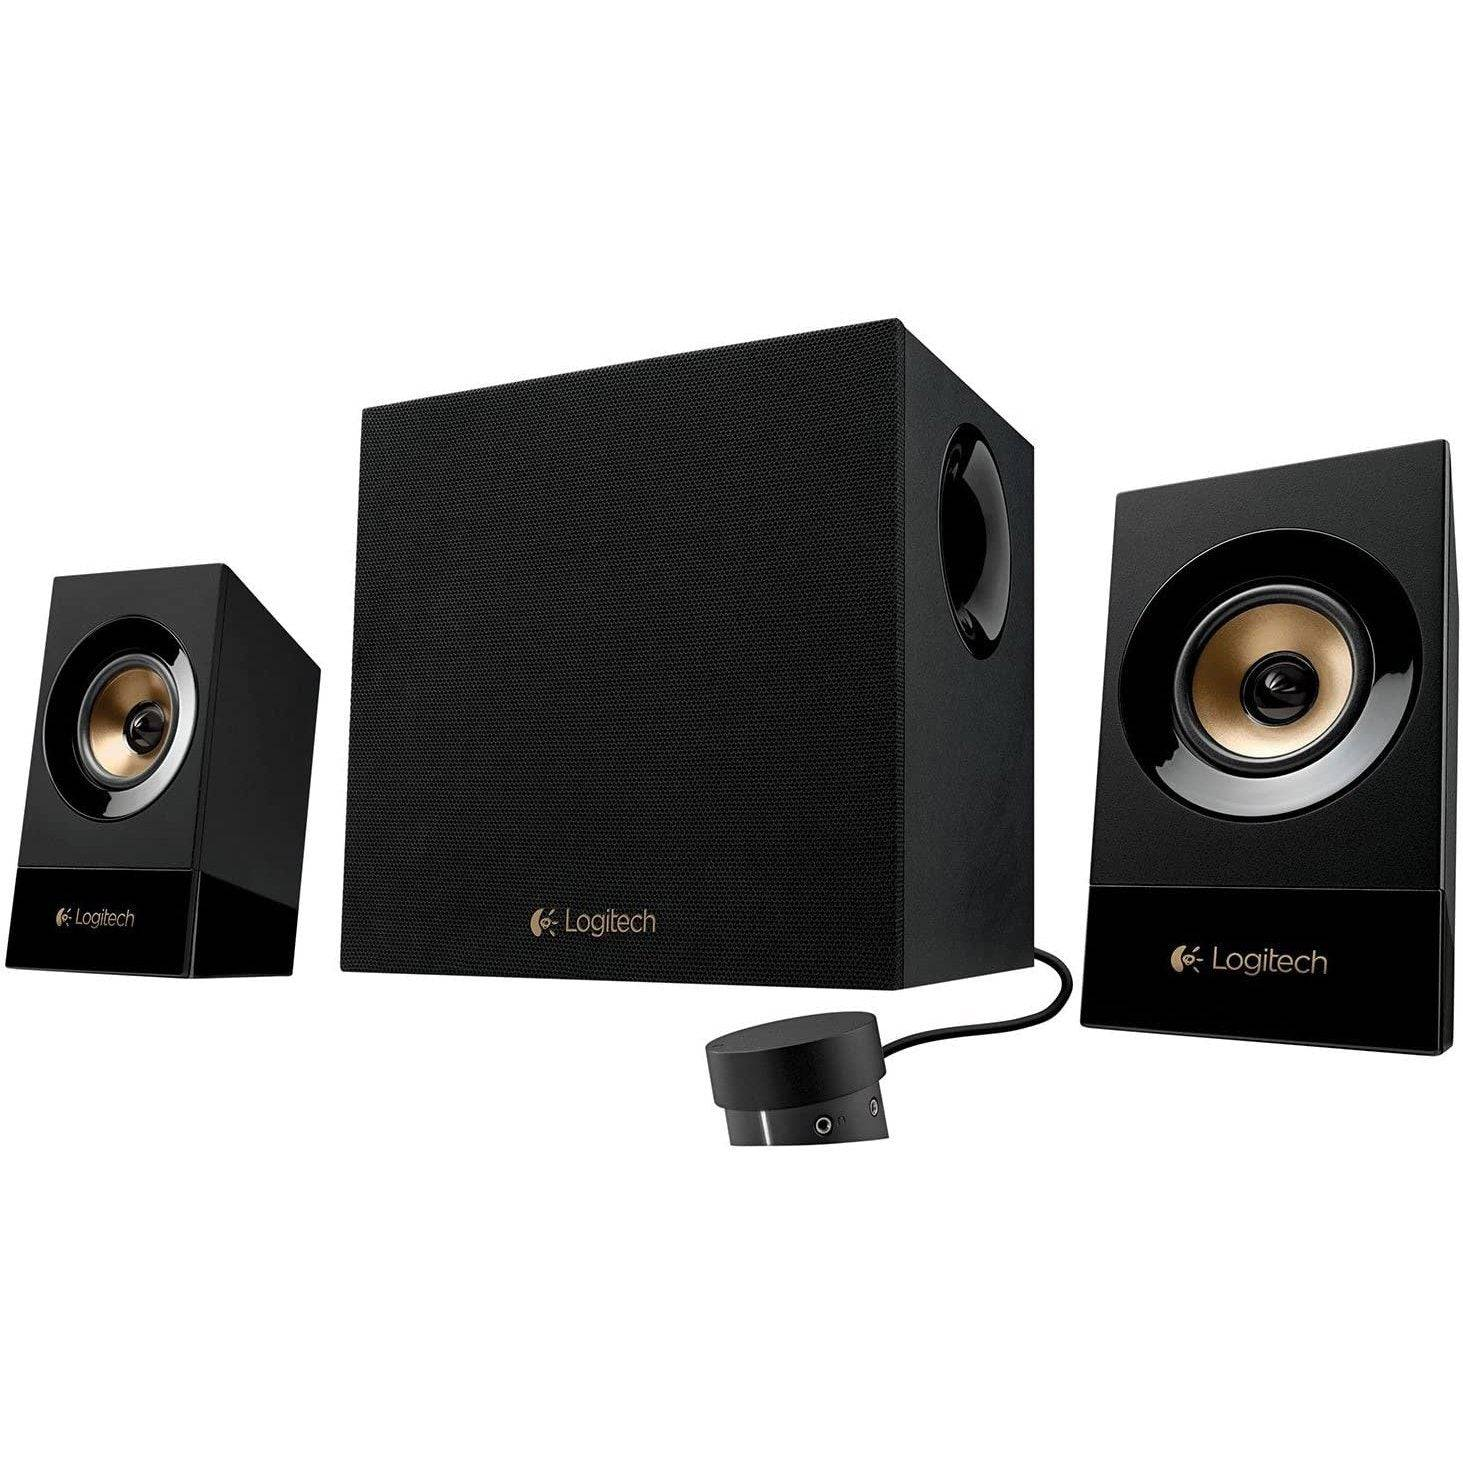 Logitech Z533 60 Watts Stereo Speakers and Subwoofer 2.1ch